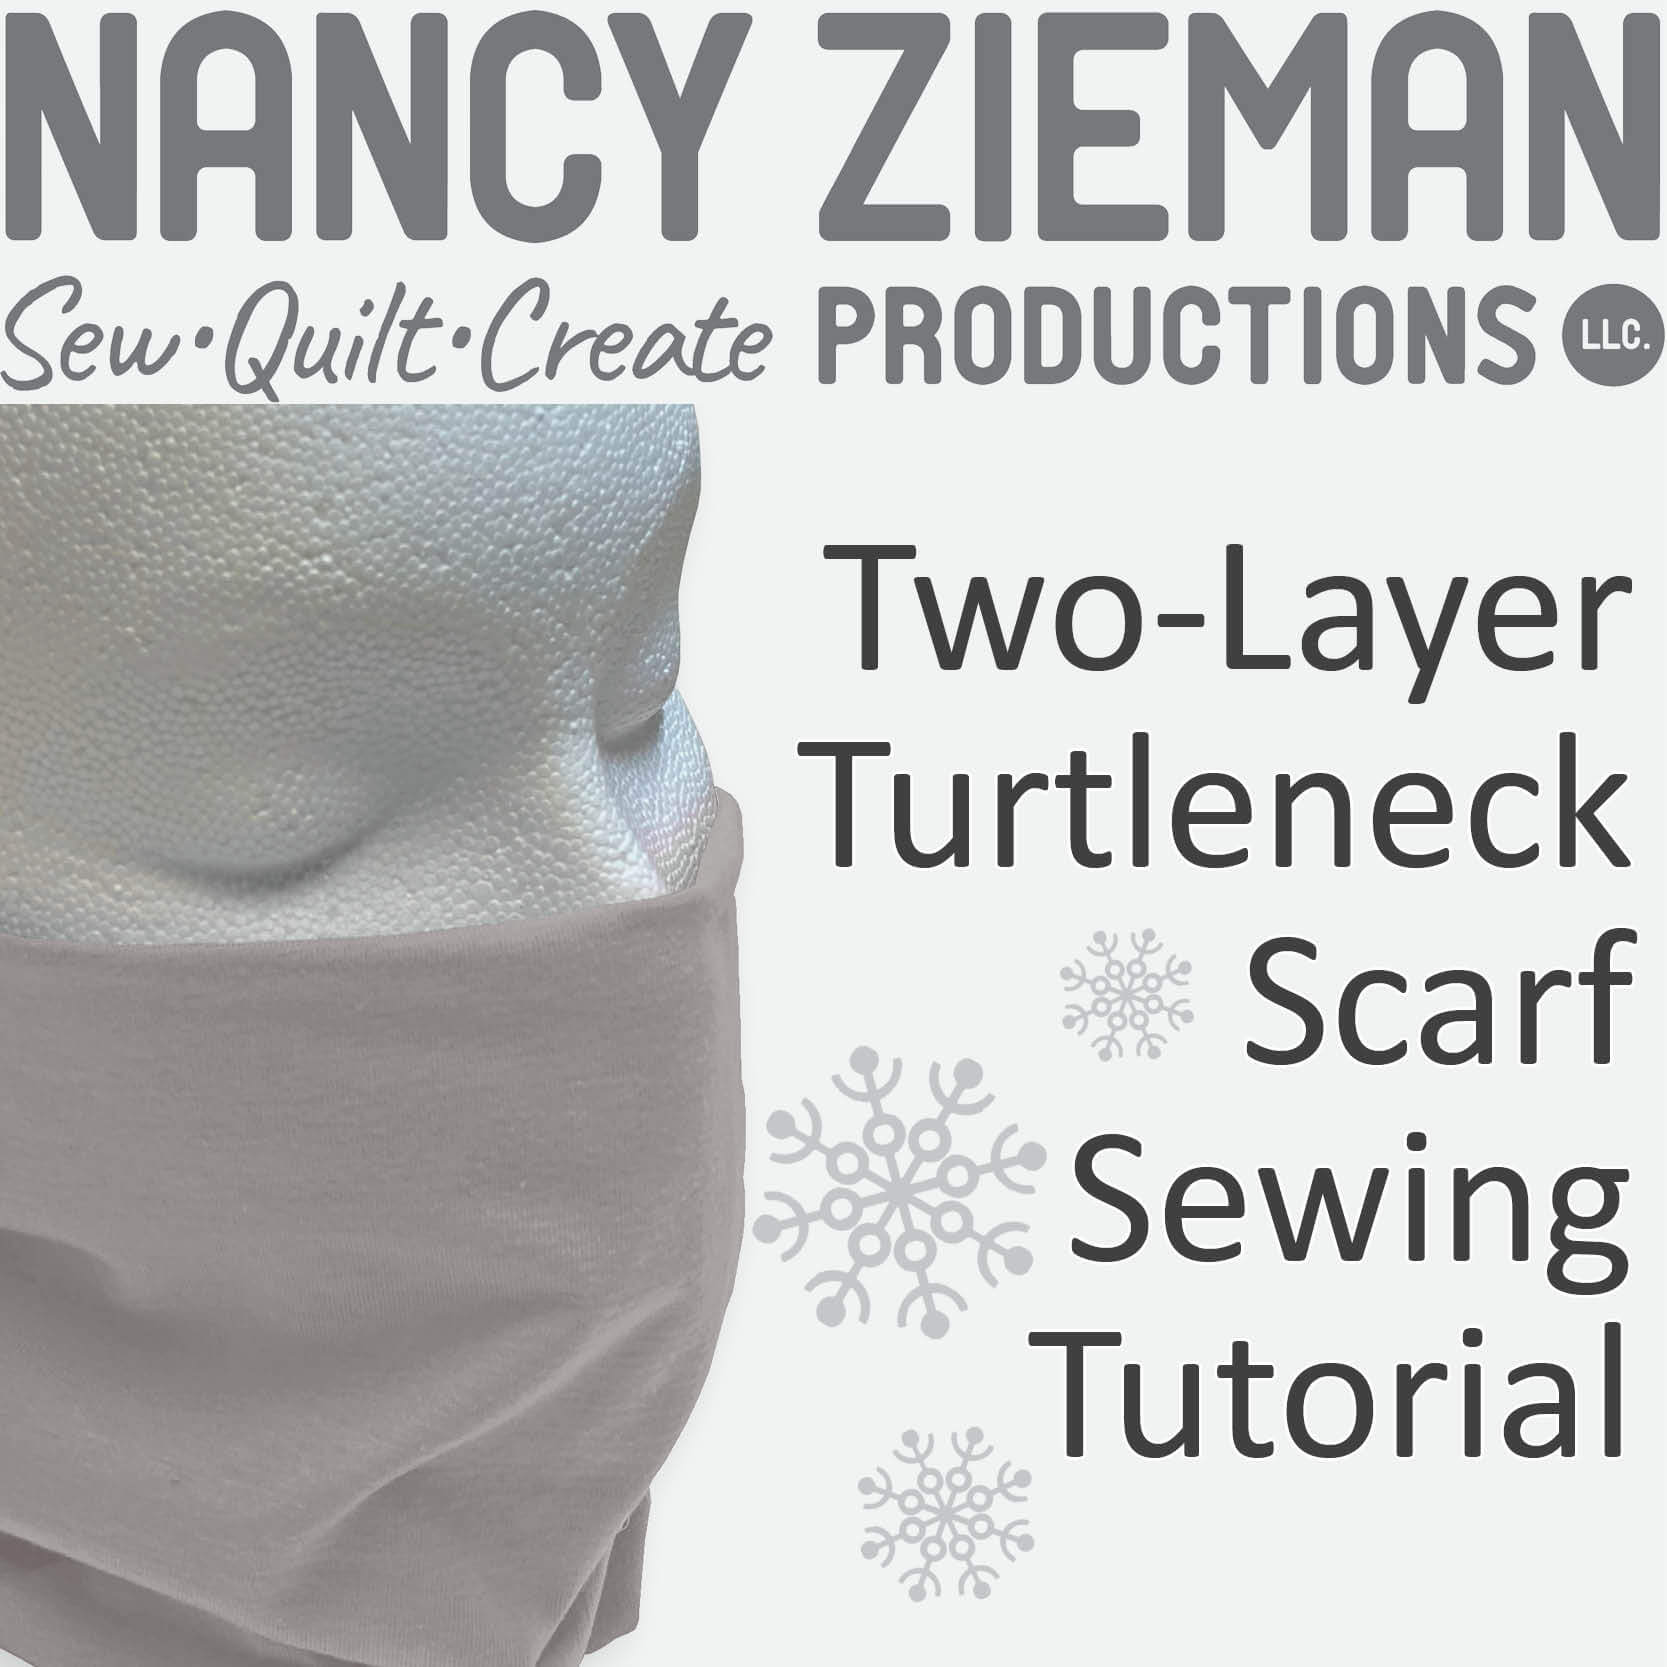 Nancy Zieman Producitons Two Layer Turtleneck Scarf Sewing Tutorial at the NZP Blog